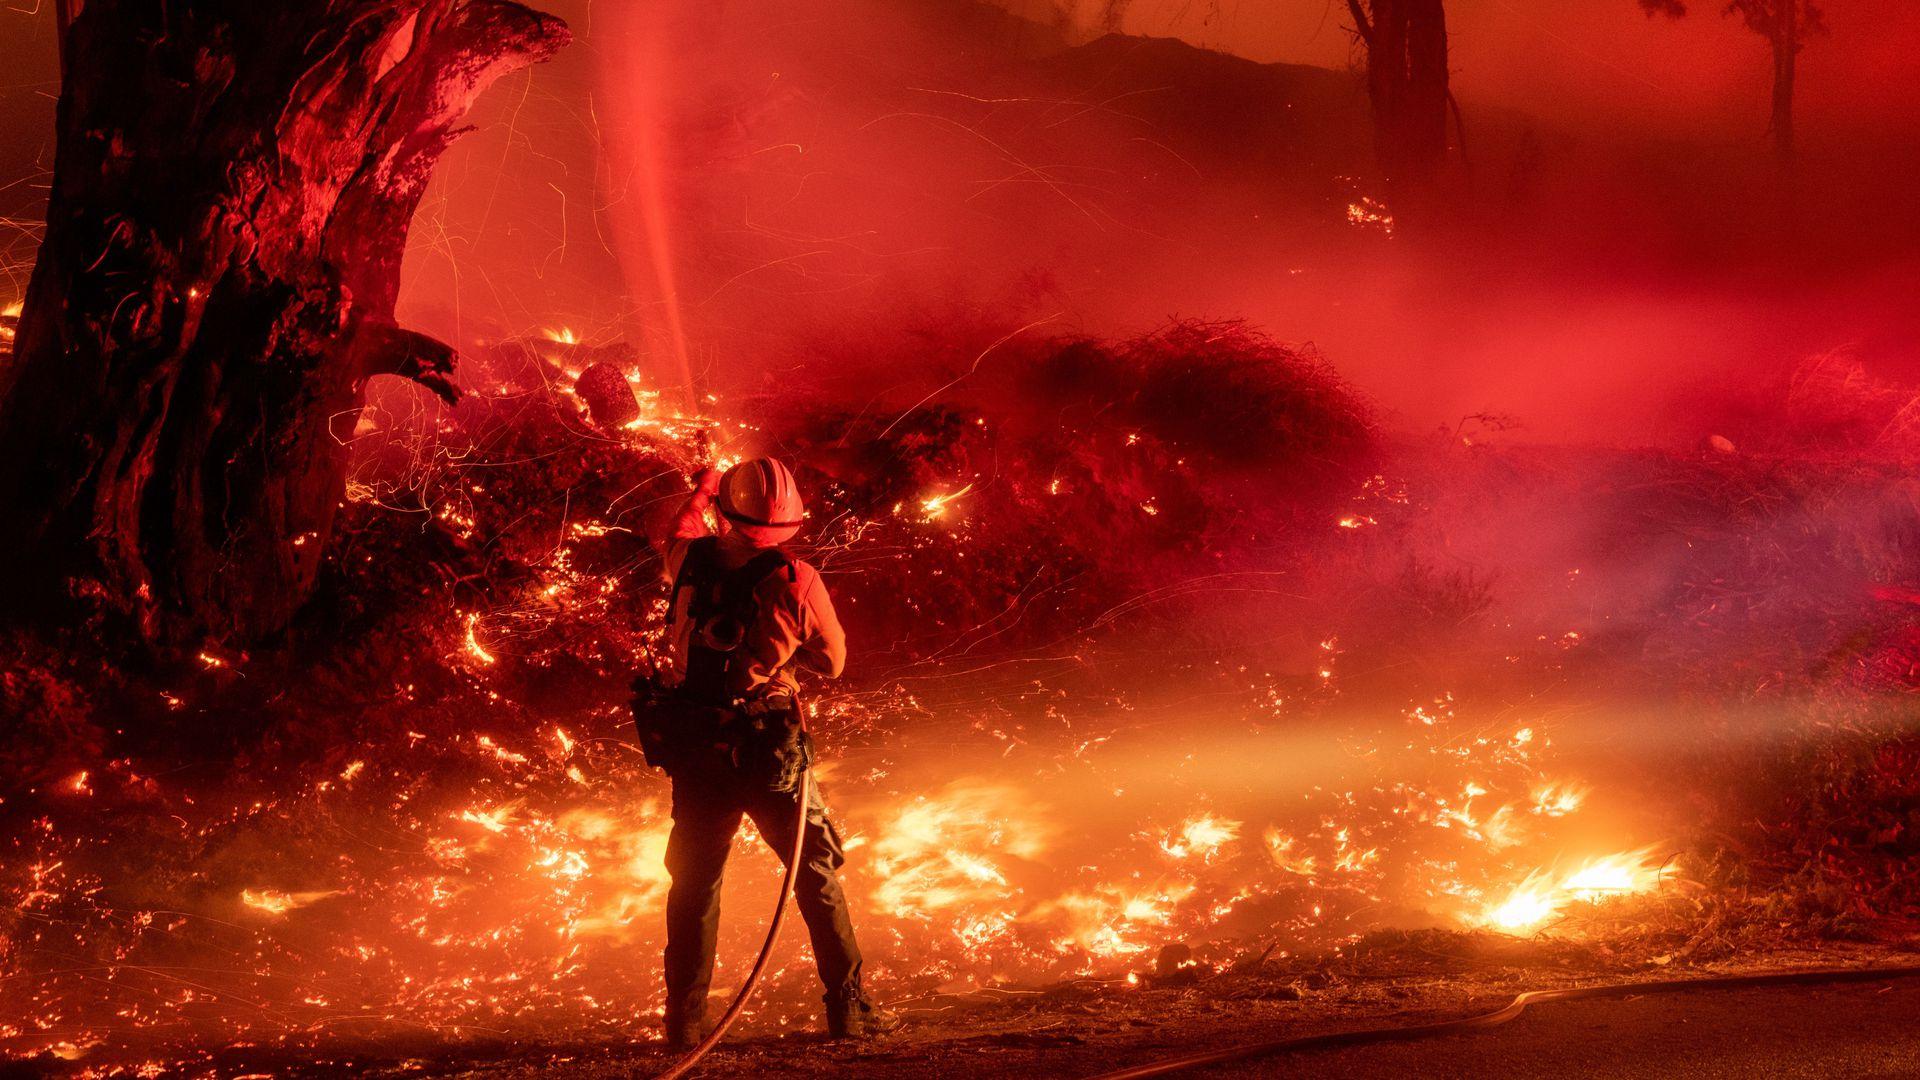 A firefighter douses flames from a backfire during the Maria fire in Santa Paula, California on November 1